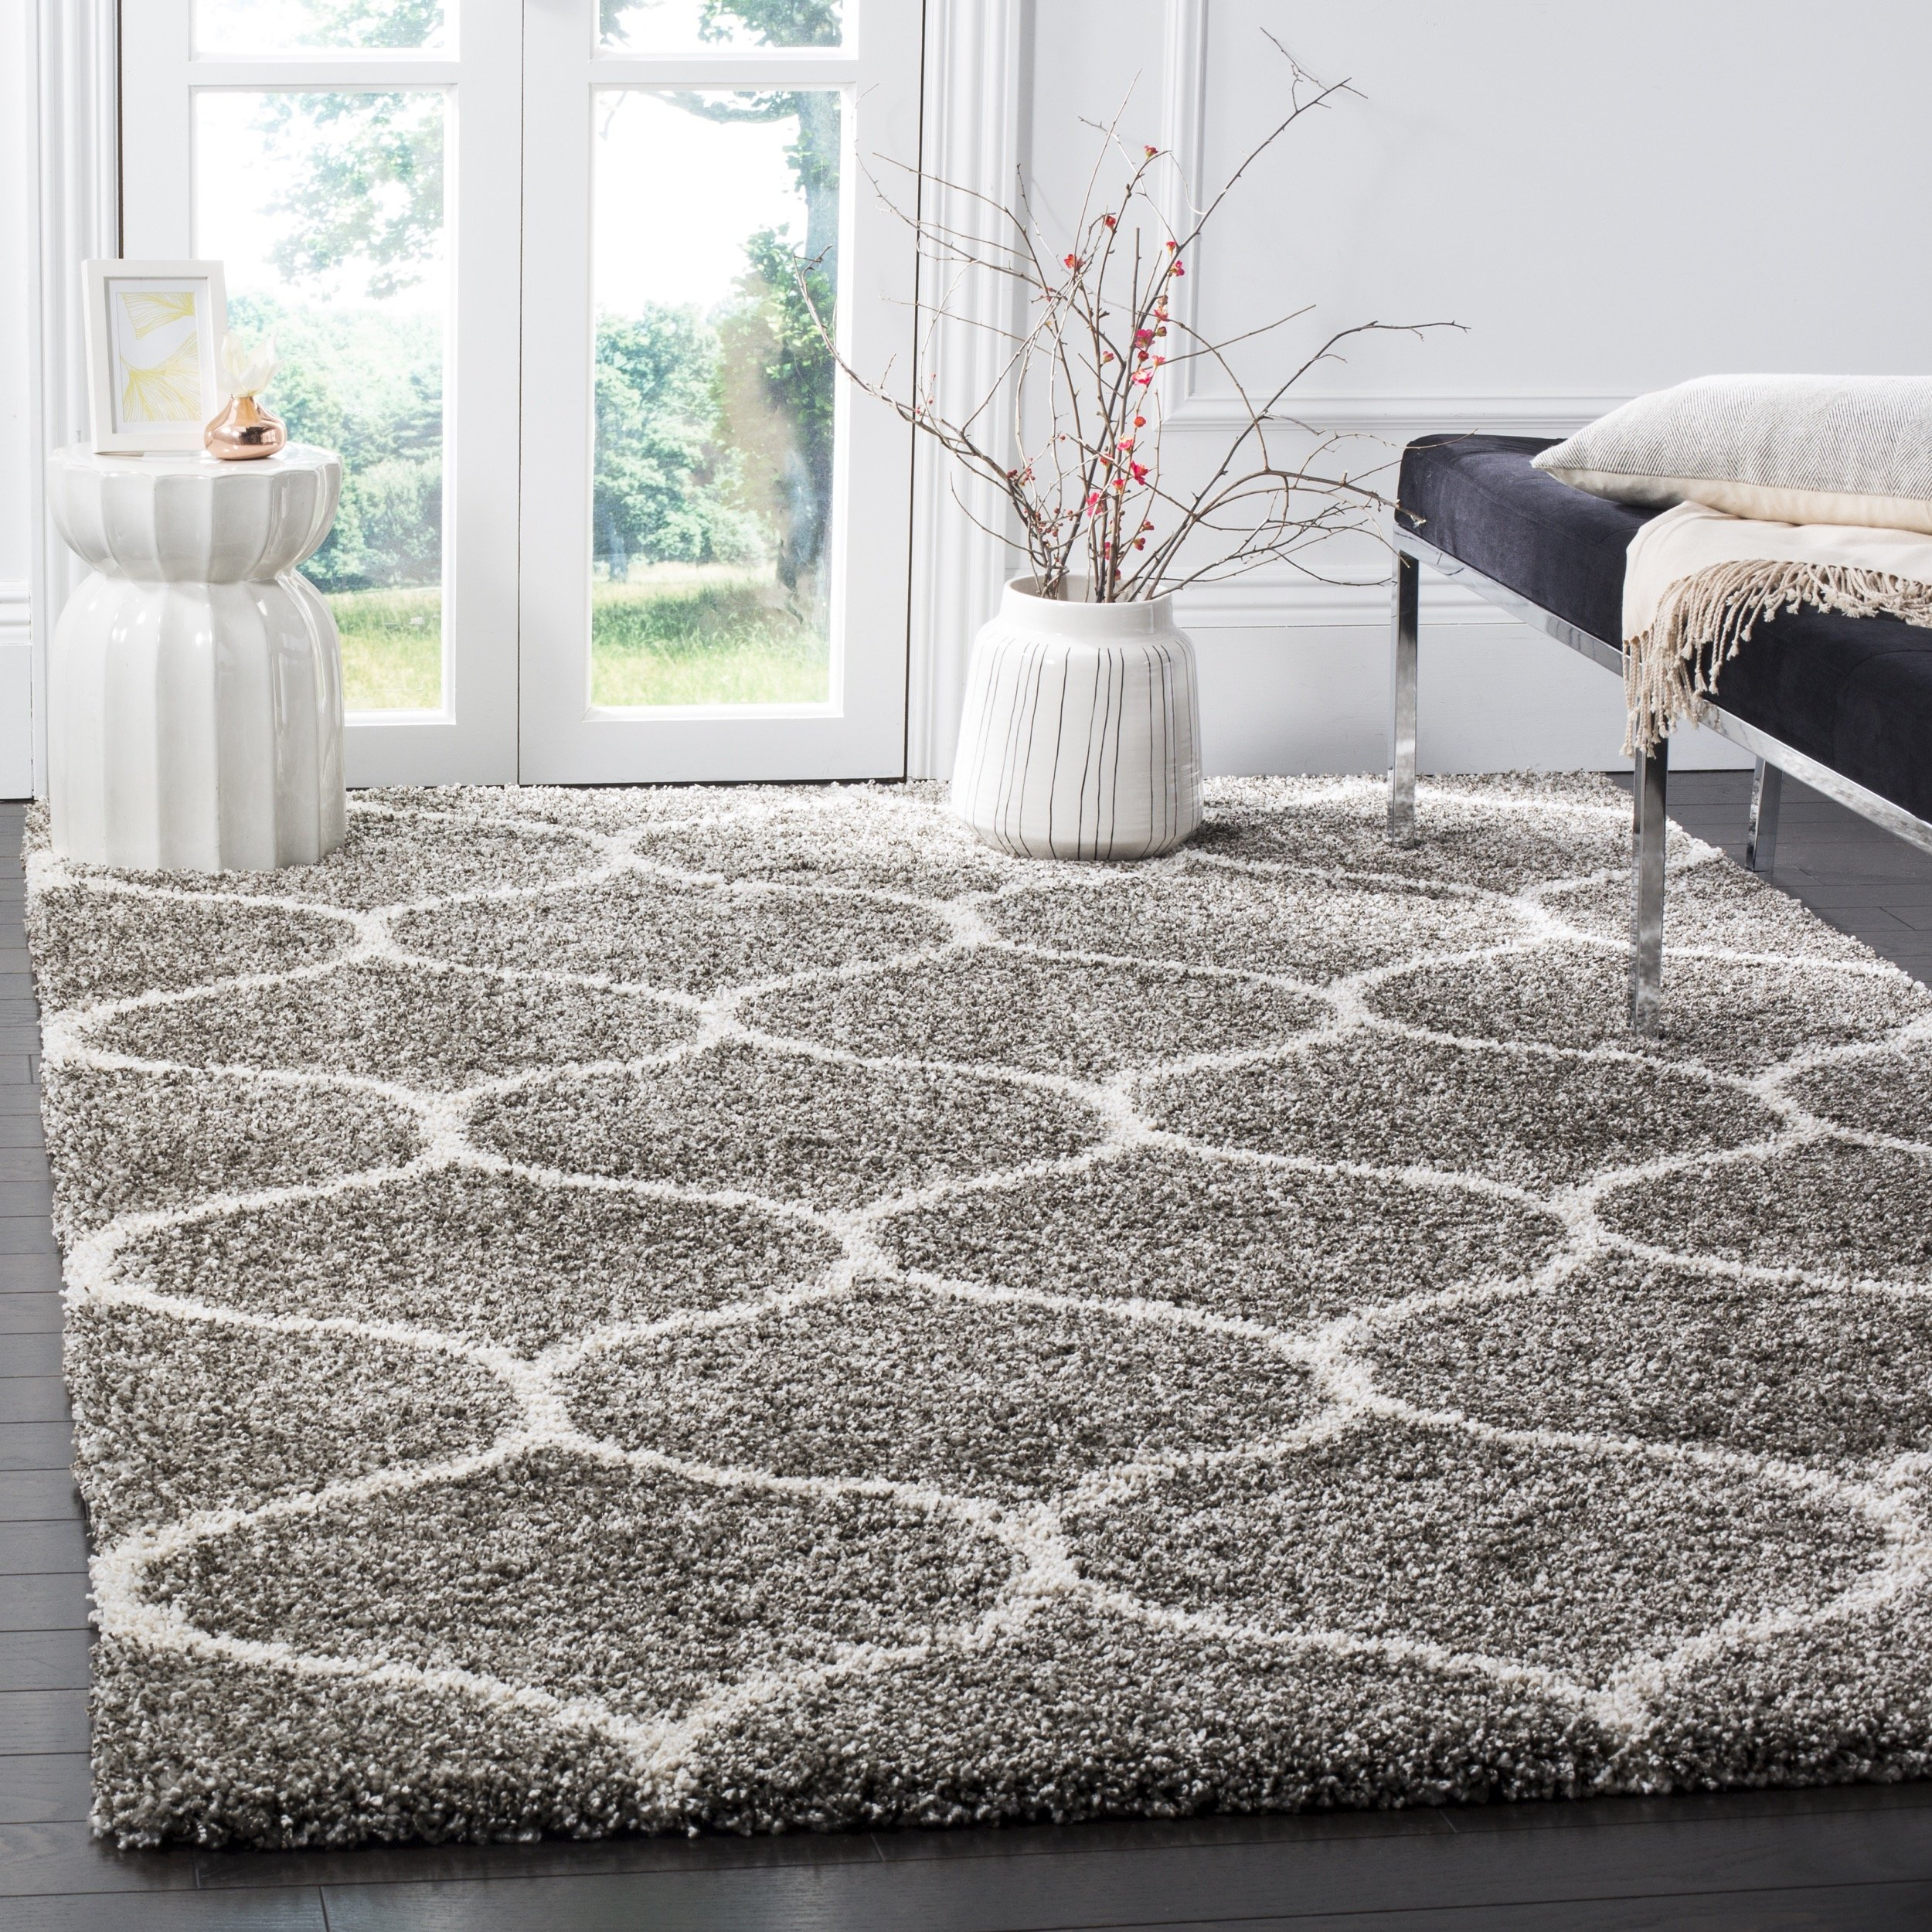 Safavieh Hudson Shag Collection SGH280B Grey and Ivory Moroccan Ogee Plush Area Rug (6' x 9') product image